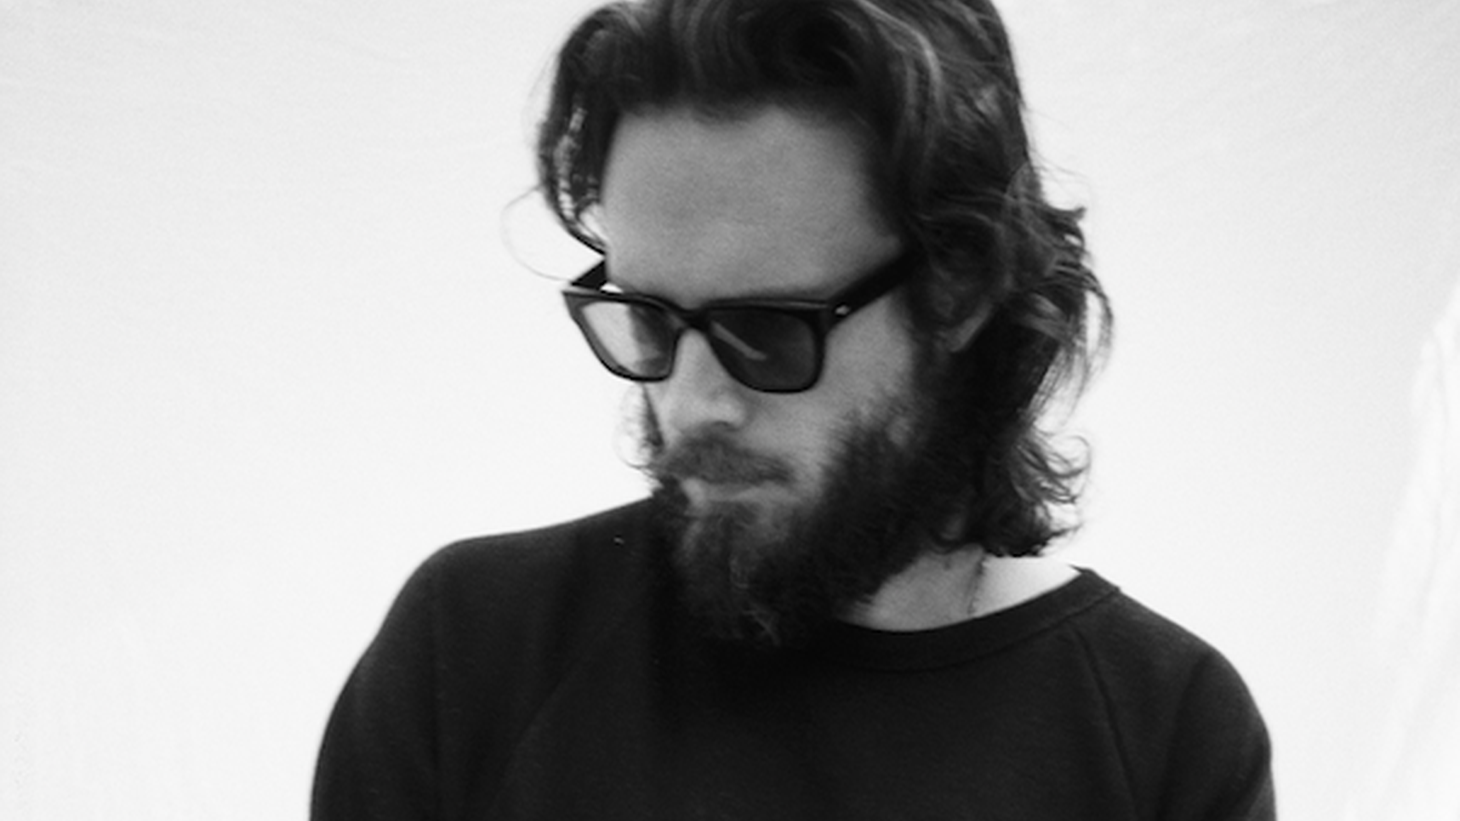 Father John Misty is headlining KCRW's World Festival at the Hollywood Bowl on June 24 and recorded an exclusive set of songs from his new album, God's Favorite Customer, for the station. We'll share these live recordings at 10am.